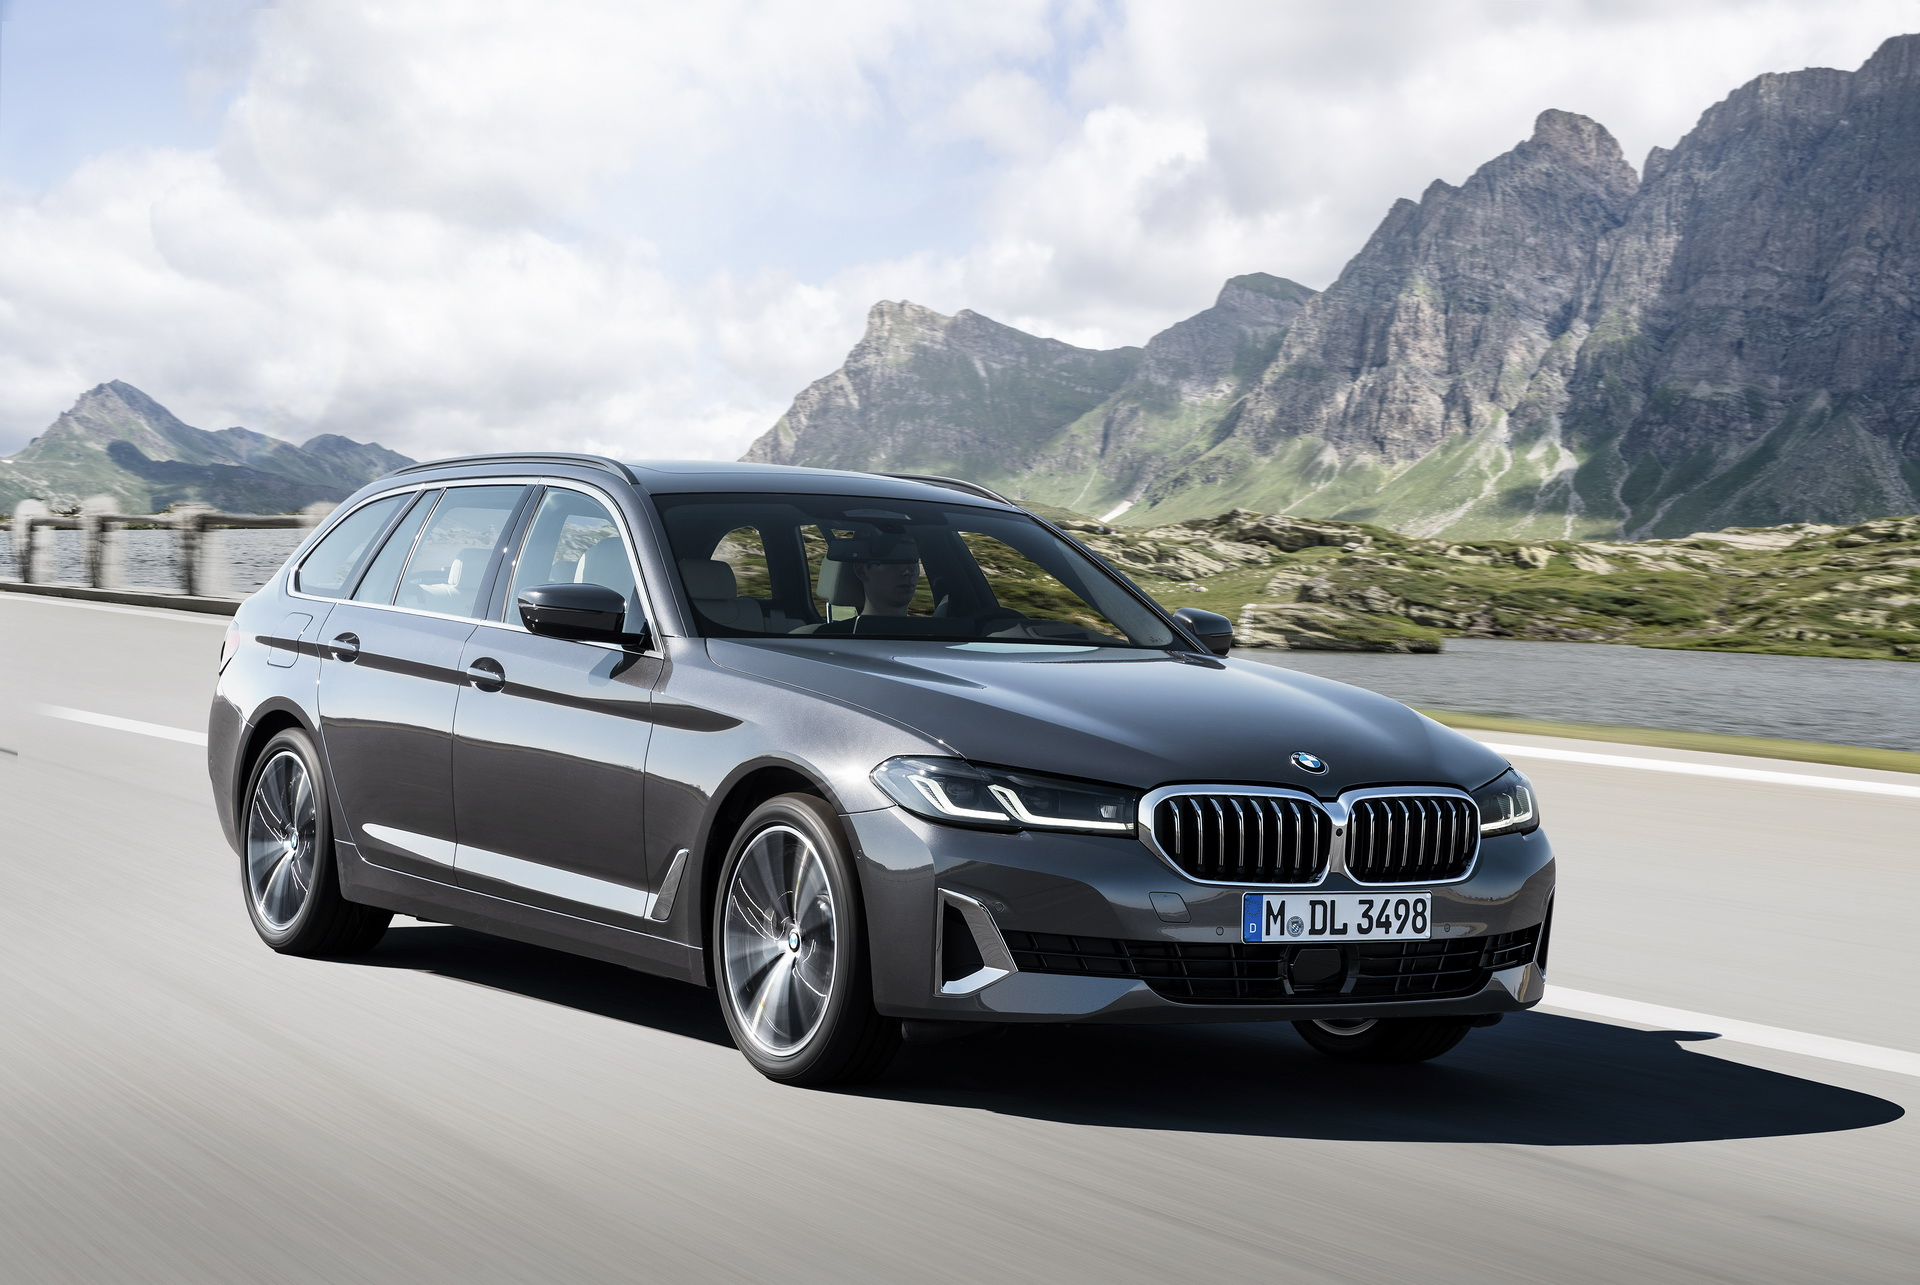 2021-bmw-5-series-touring-1.jpg